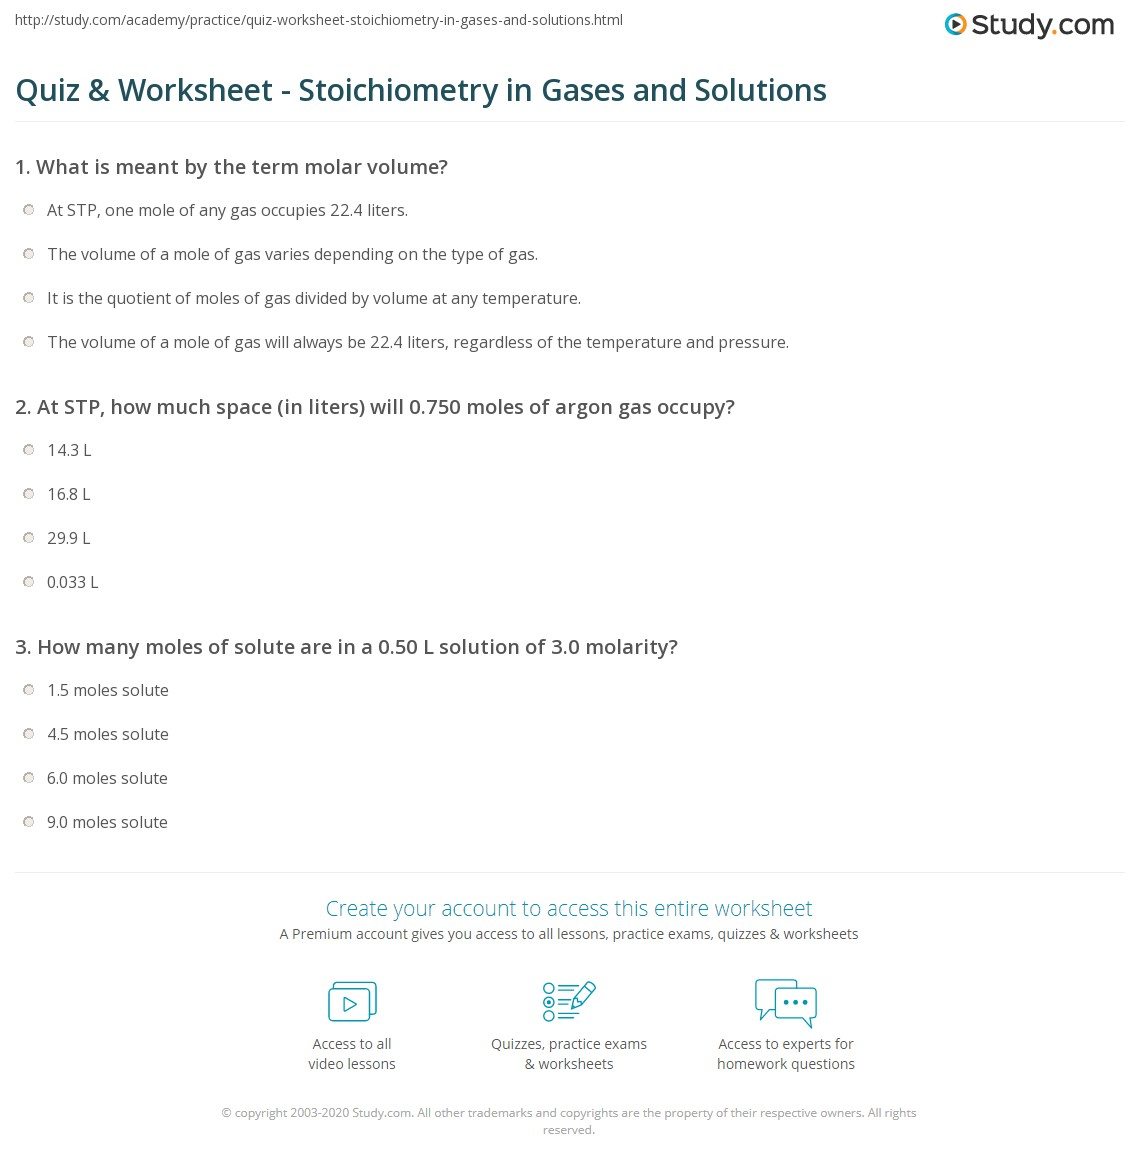 quiz worksheet stoichiometry in gases and solutions. Black Bedroom Furniture Sets. Home Design Ideas